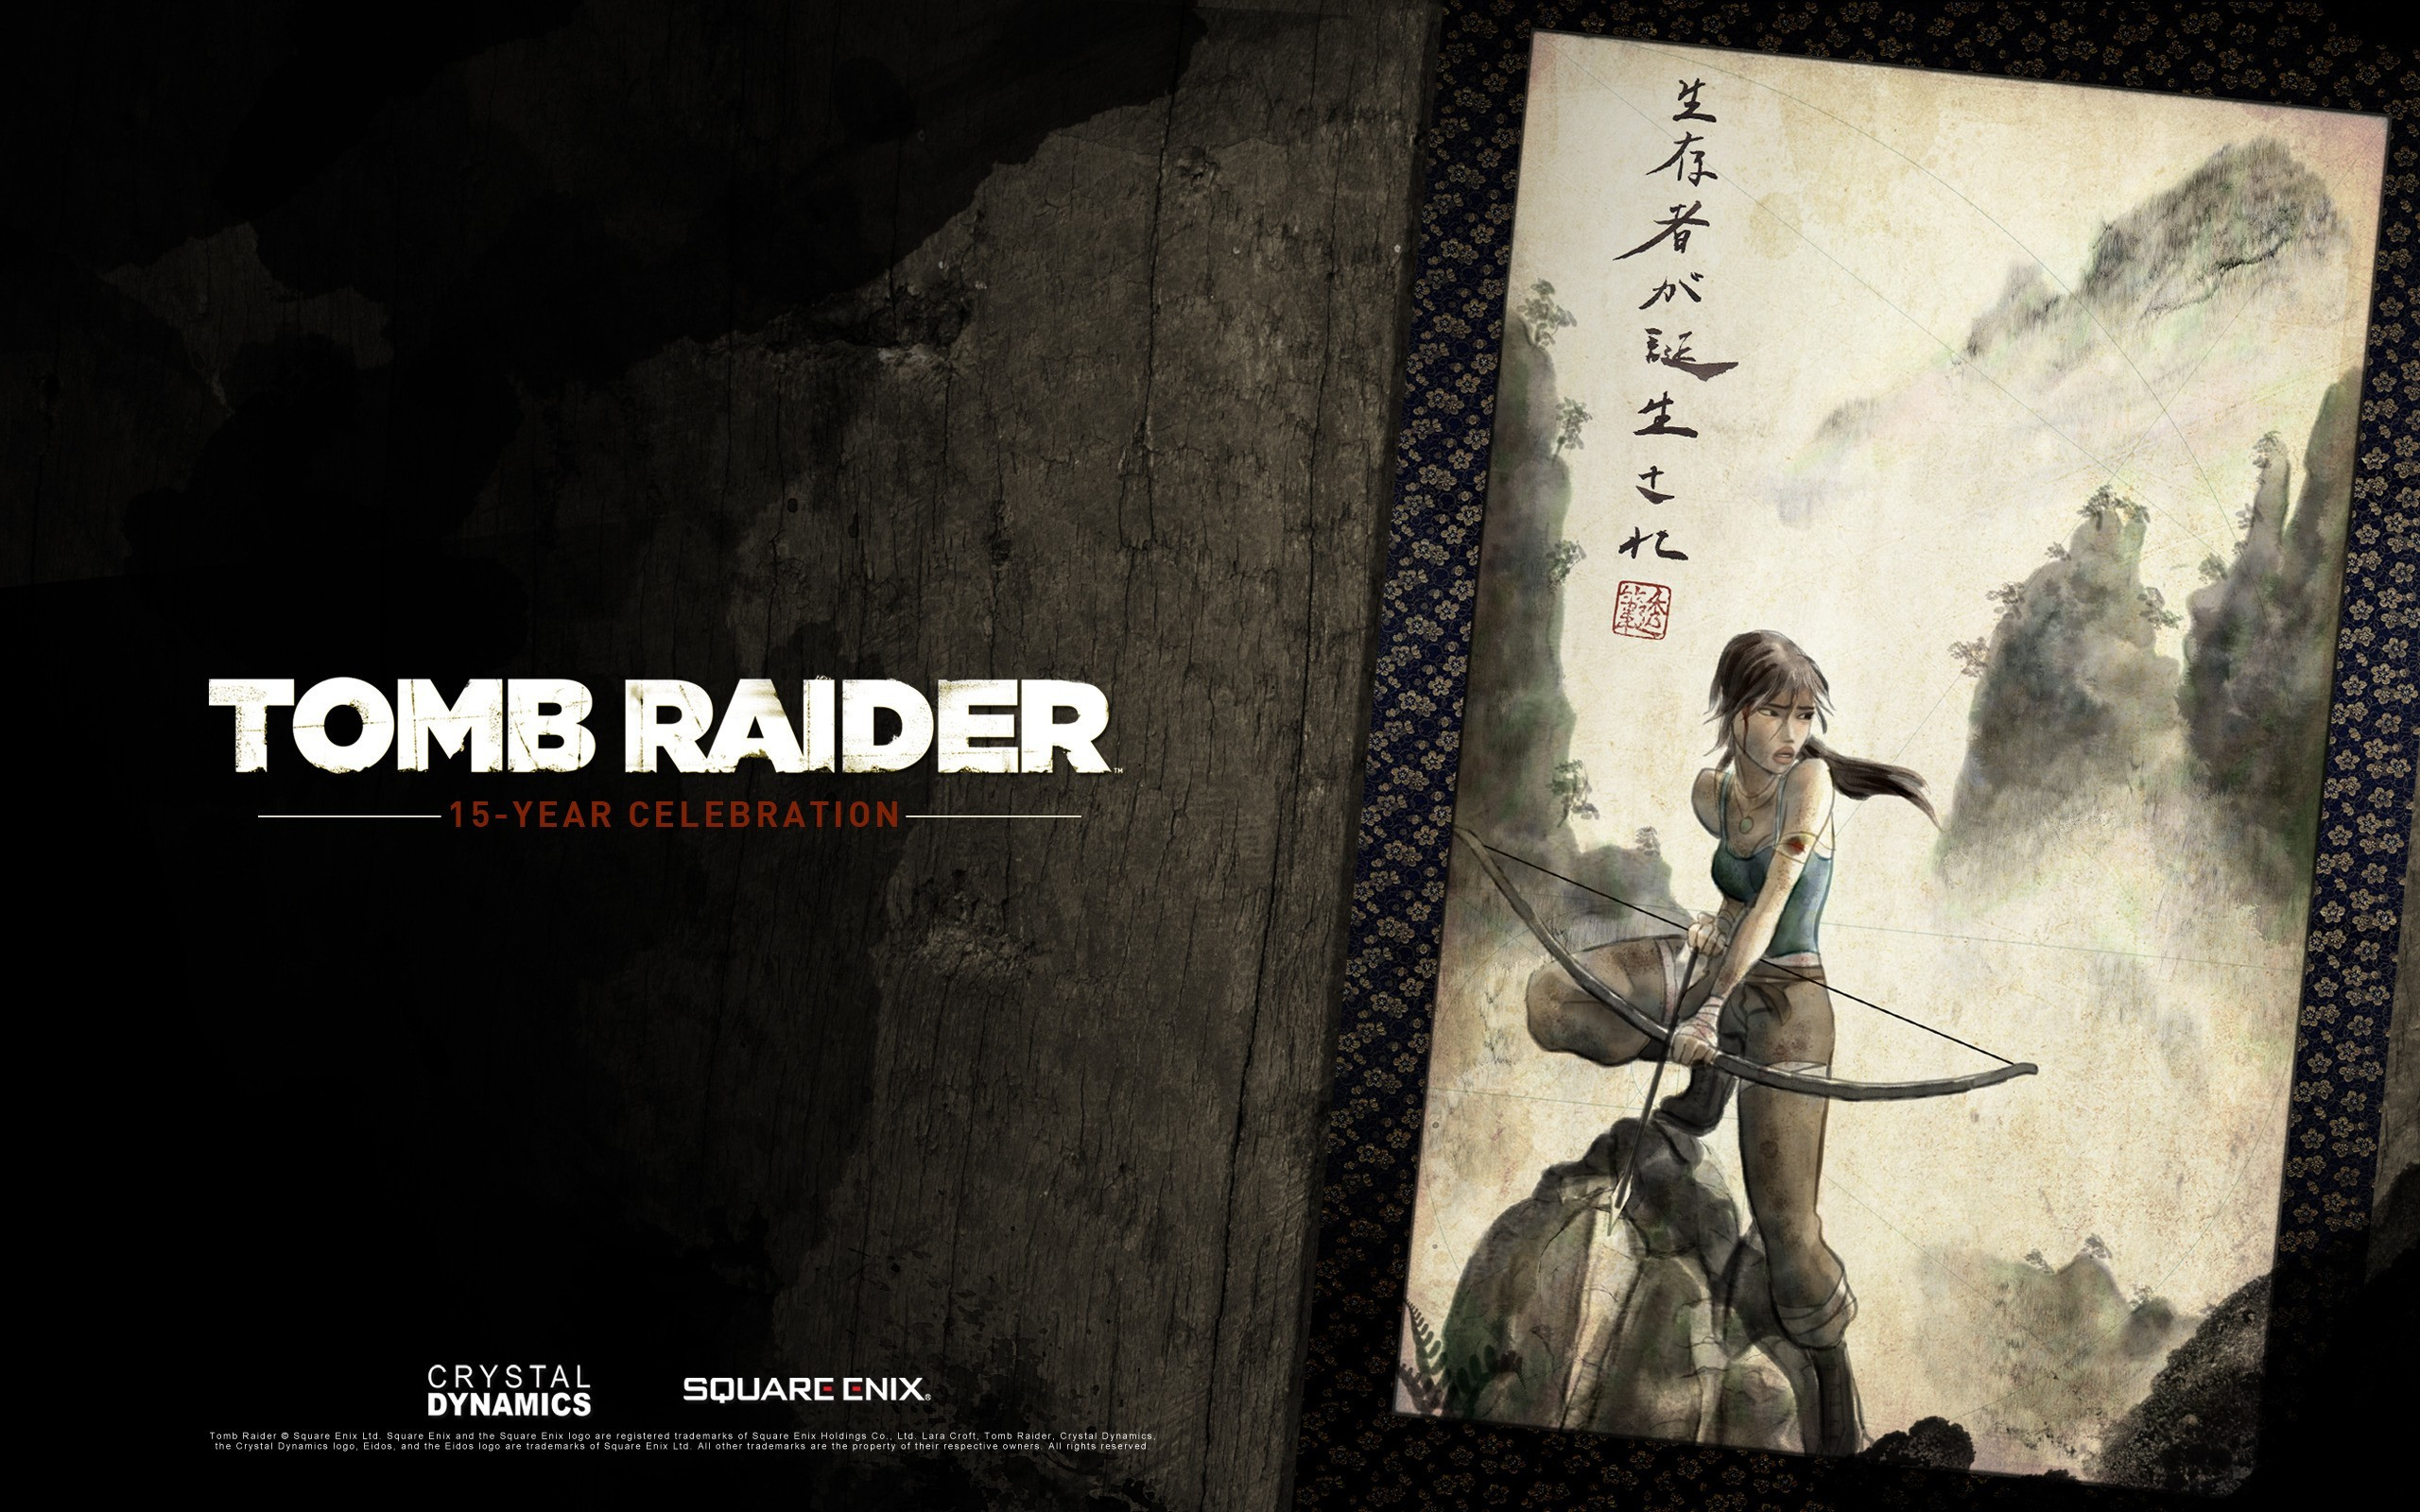 tomb raider celebration HD Wallpaper